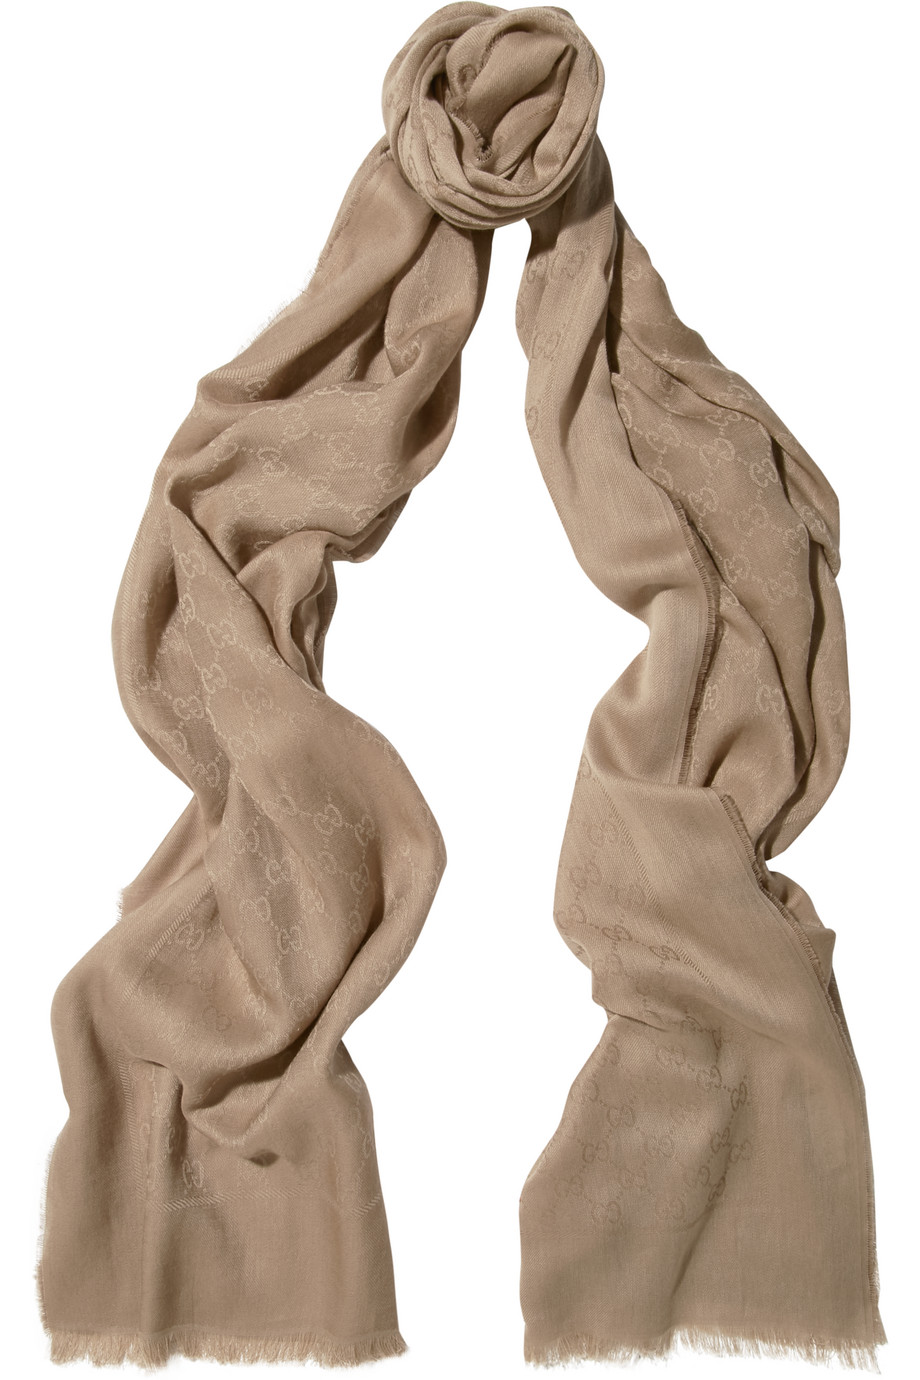 Gucci Cotton-Jacquard Scarf, Sand, Women's